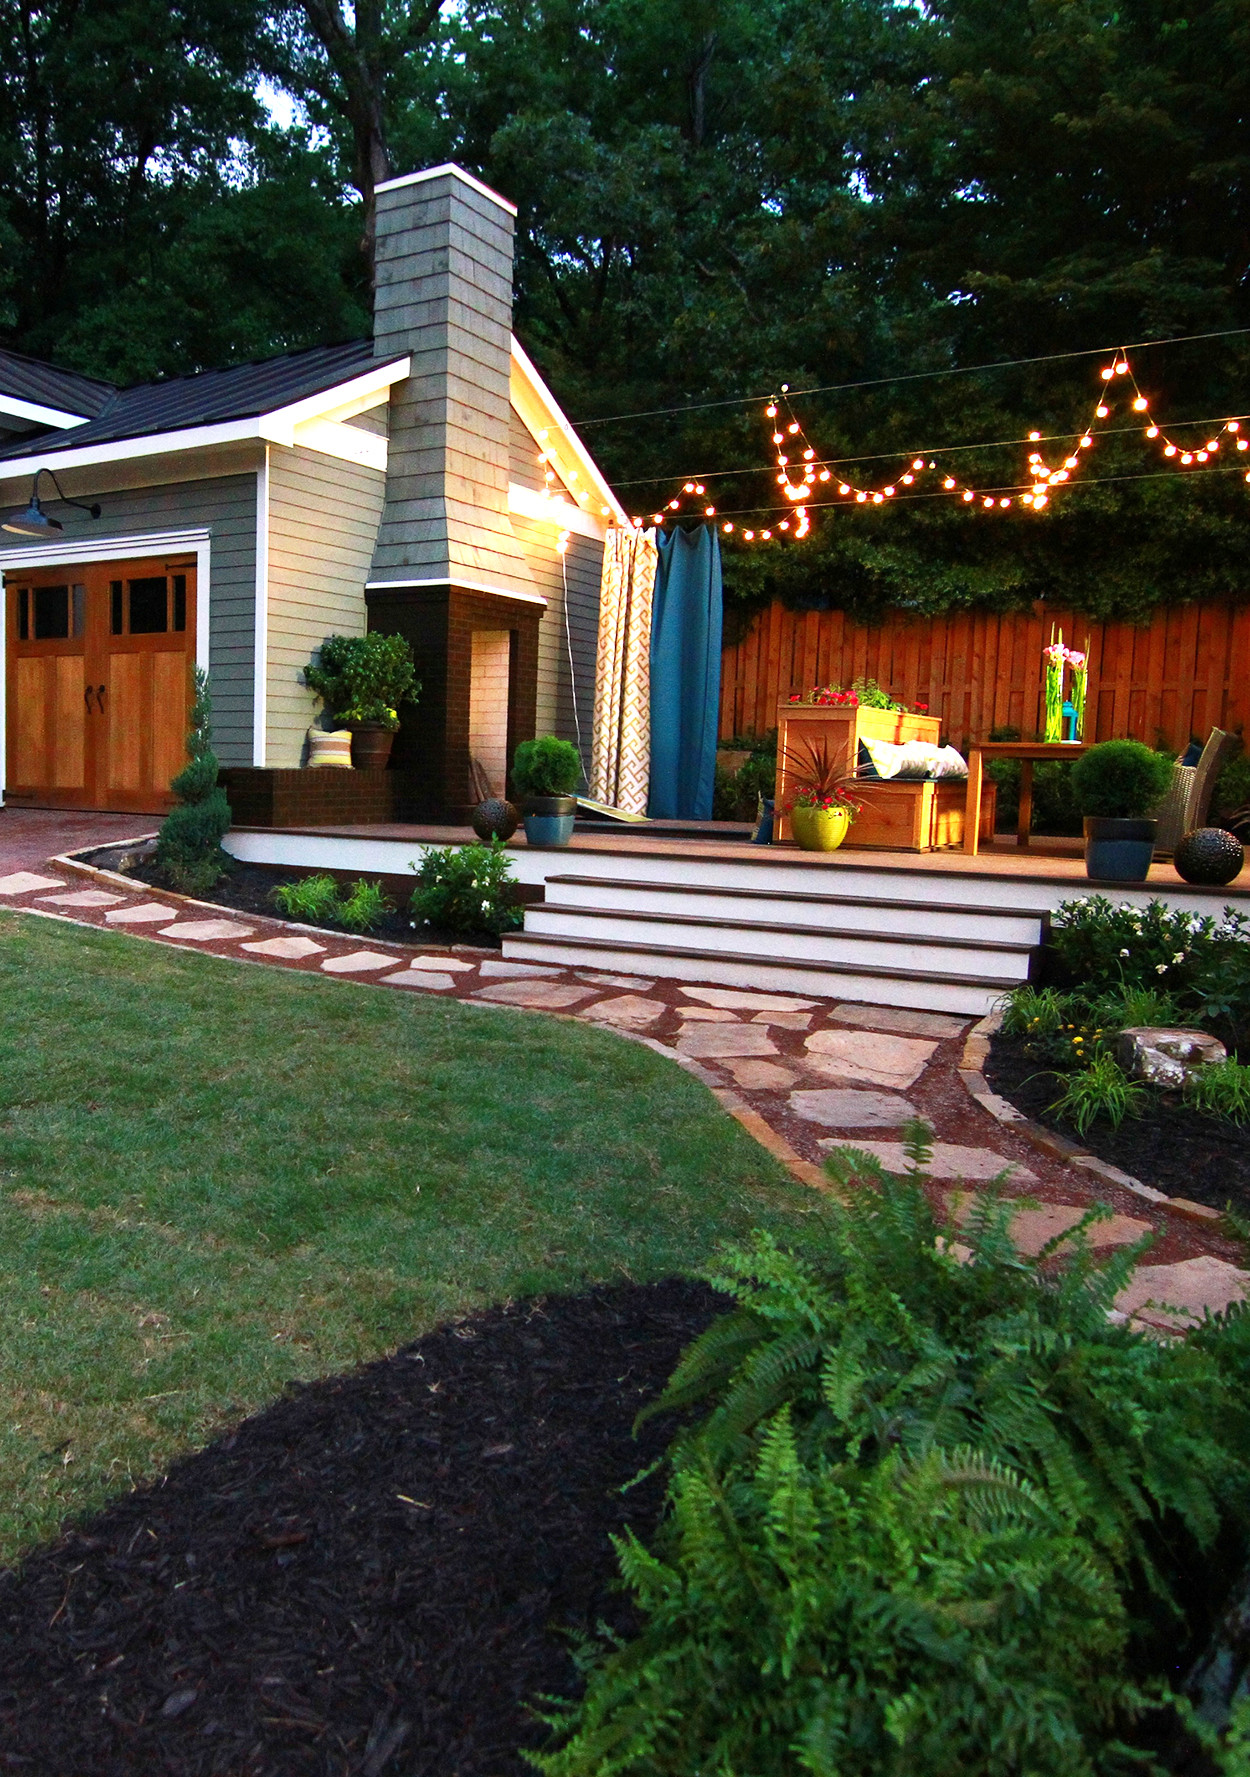 How to Turn a Small Backyard into an Entertaining Oasis - How To Turn A Small Backyard Into An Entertaining Oasis Martha Stewart